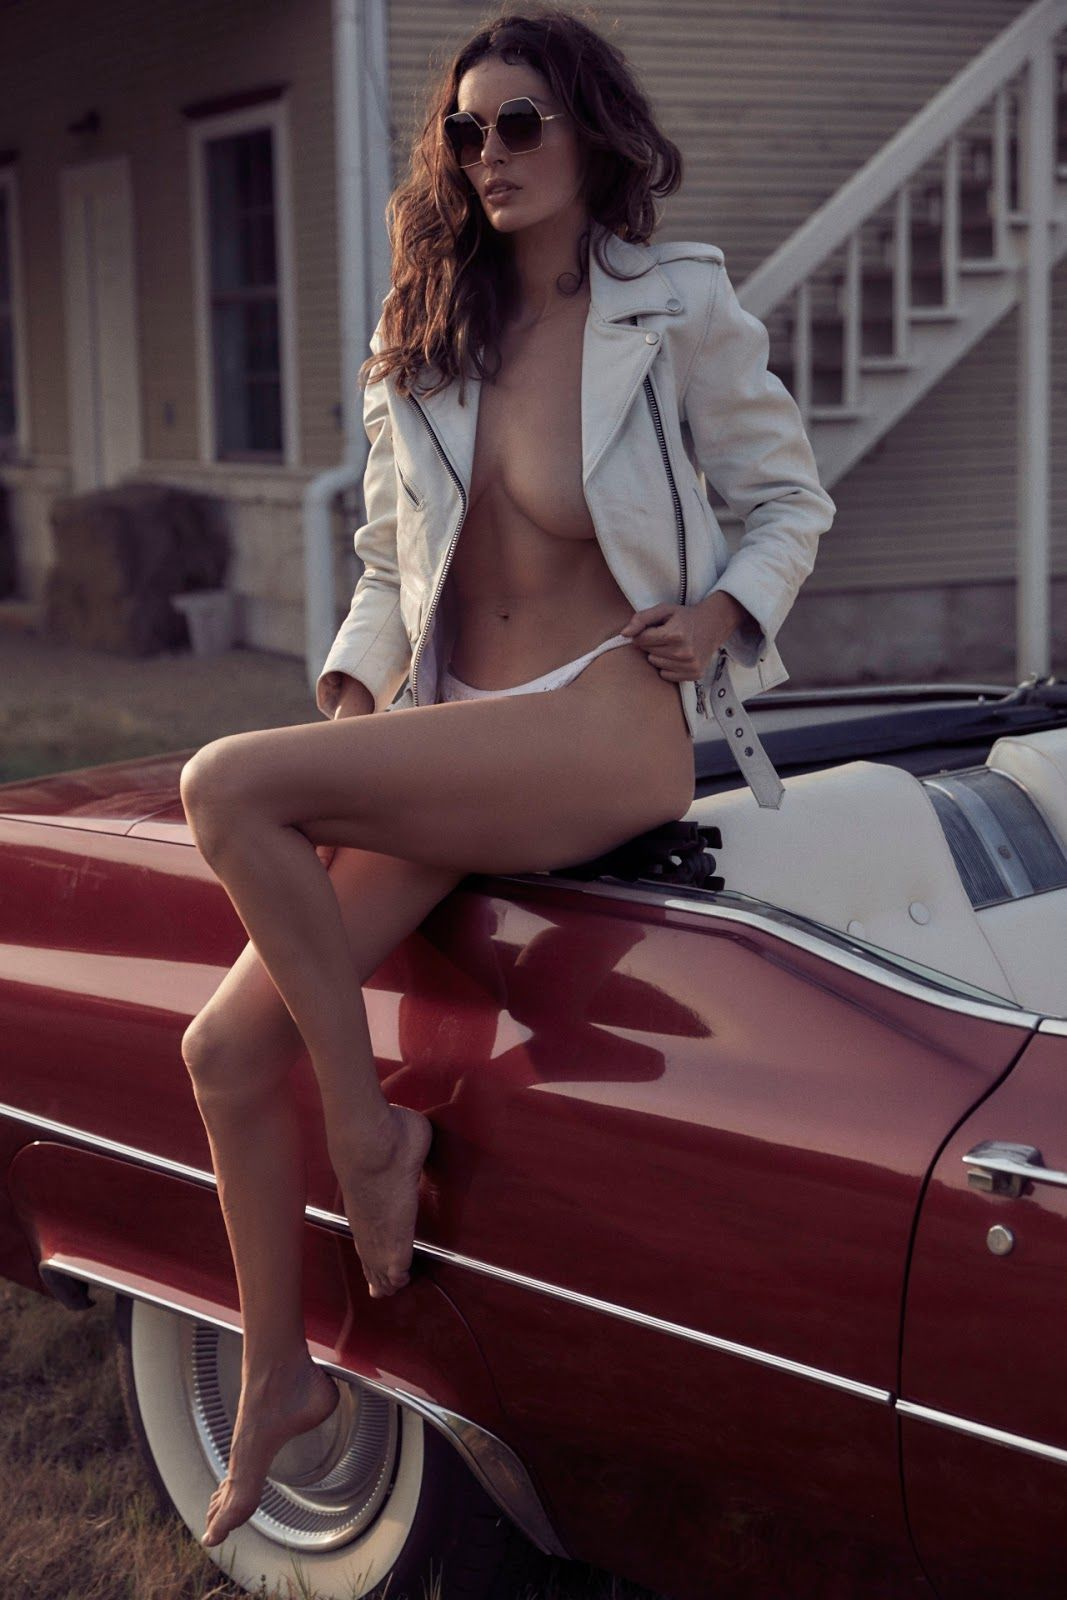 Matchless theme, Naked girls and classic cars